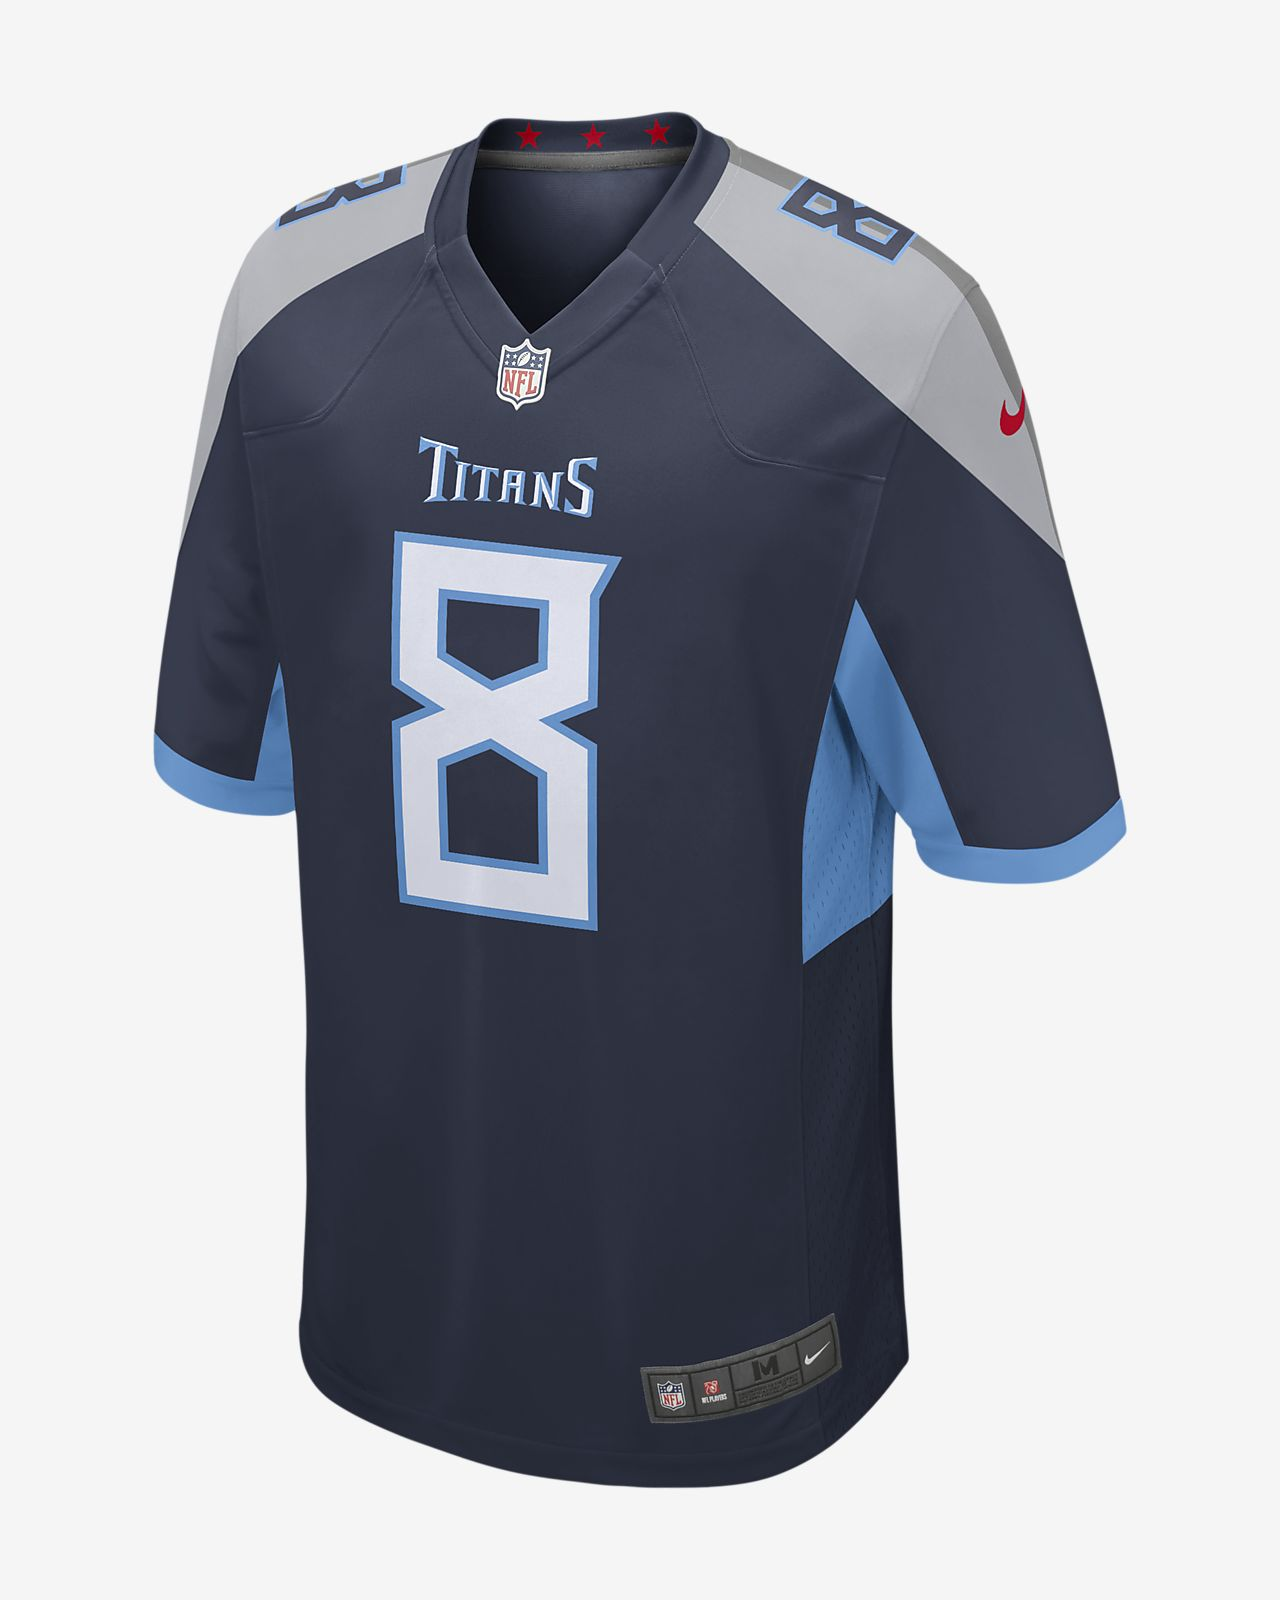 13768c8a772 NFL Tennessee Titans Game Jersey (Marcus Mariota) Men's Football ...